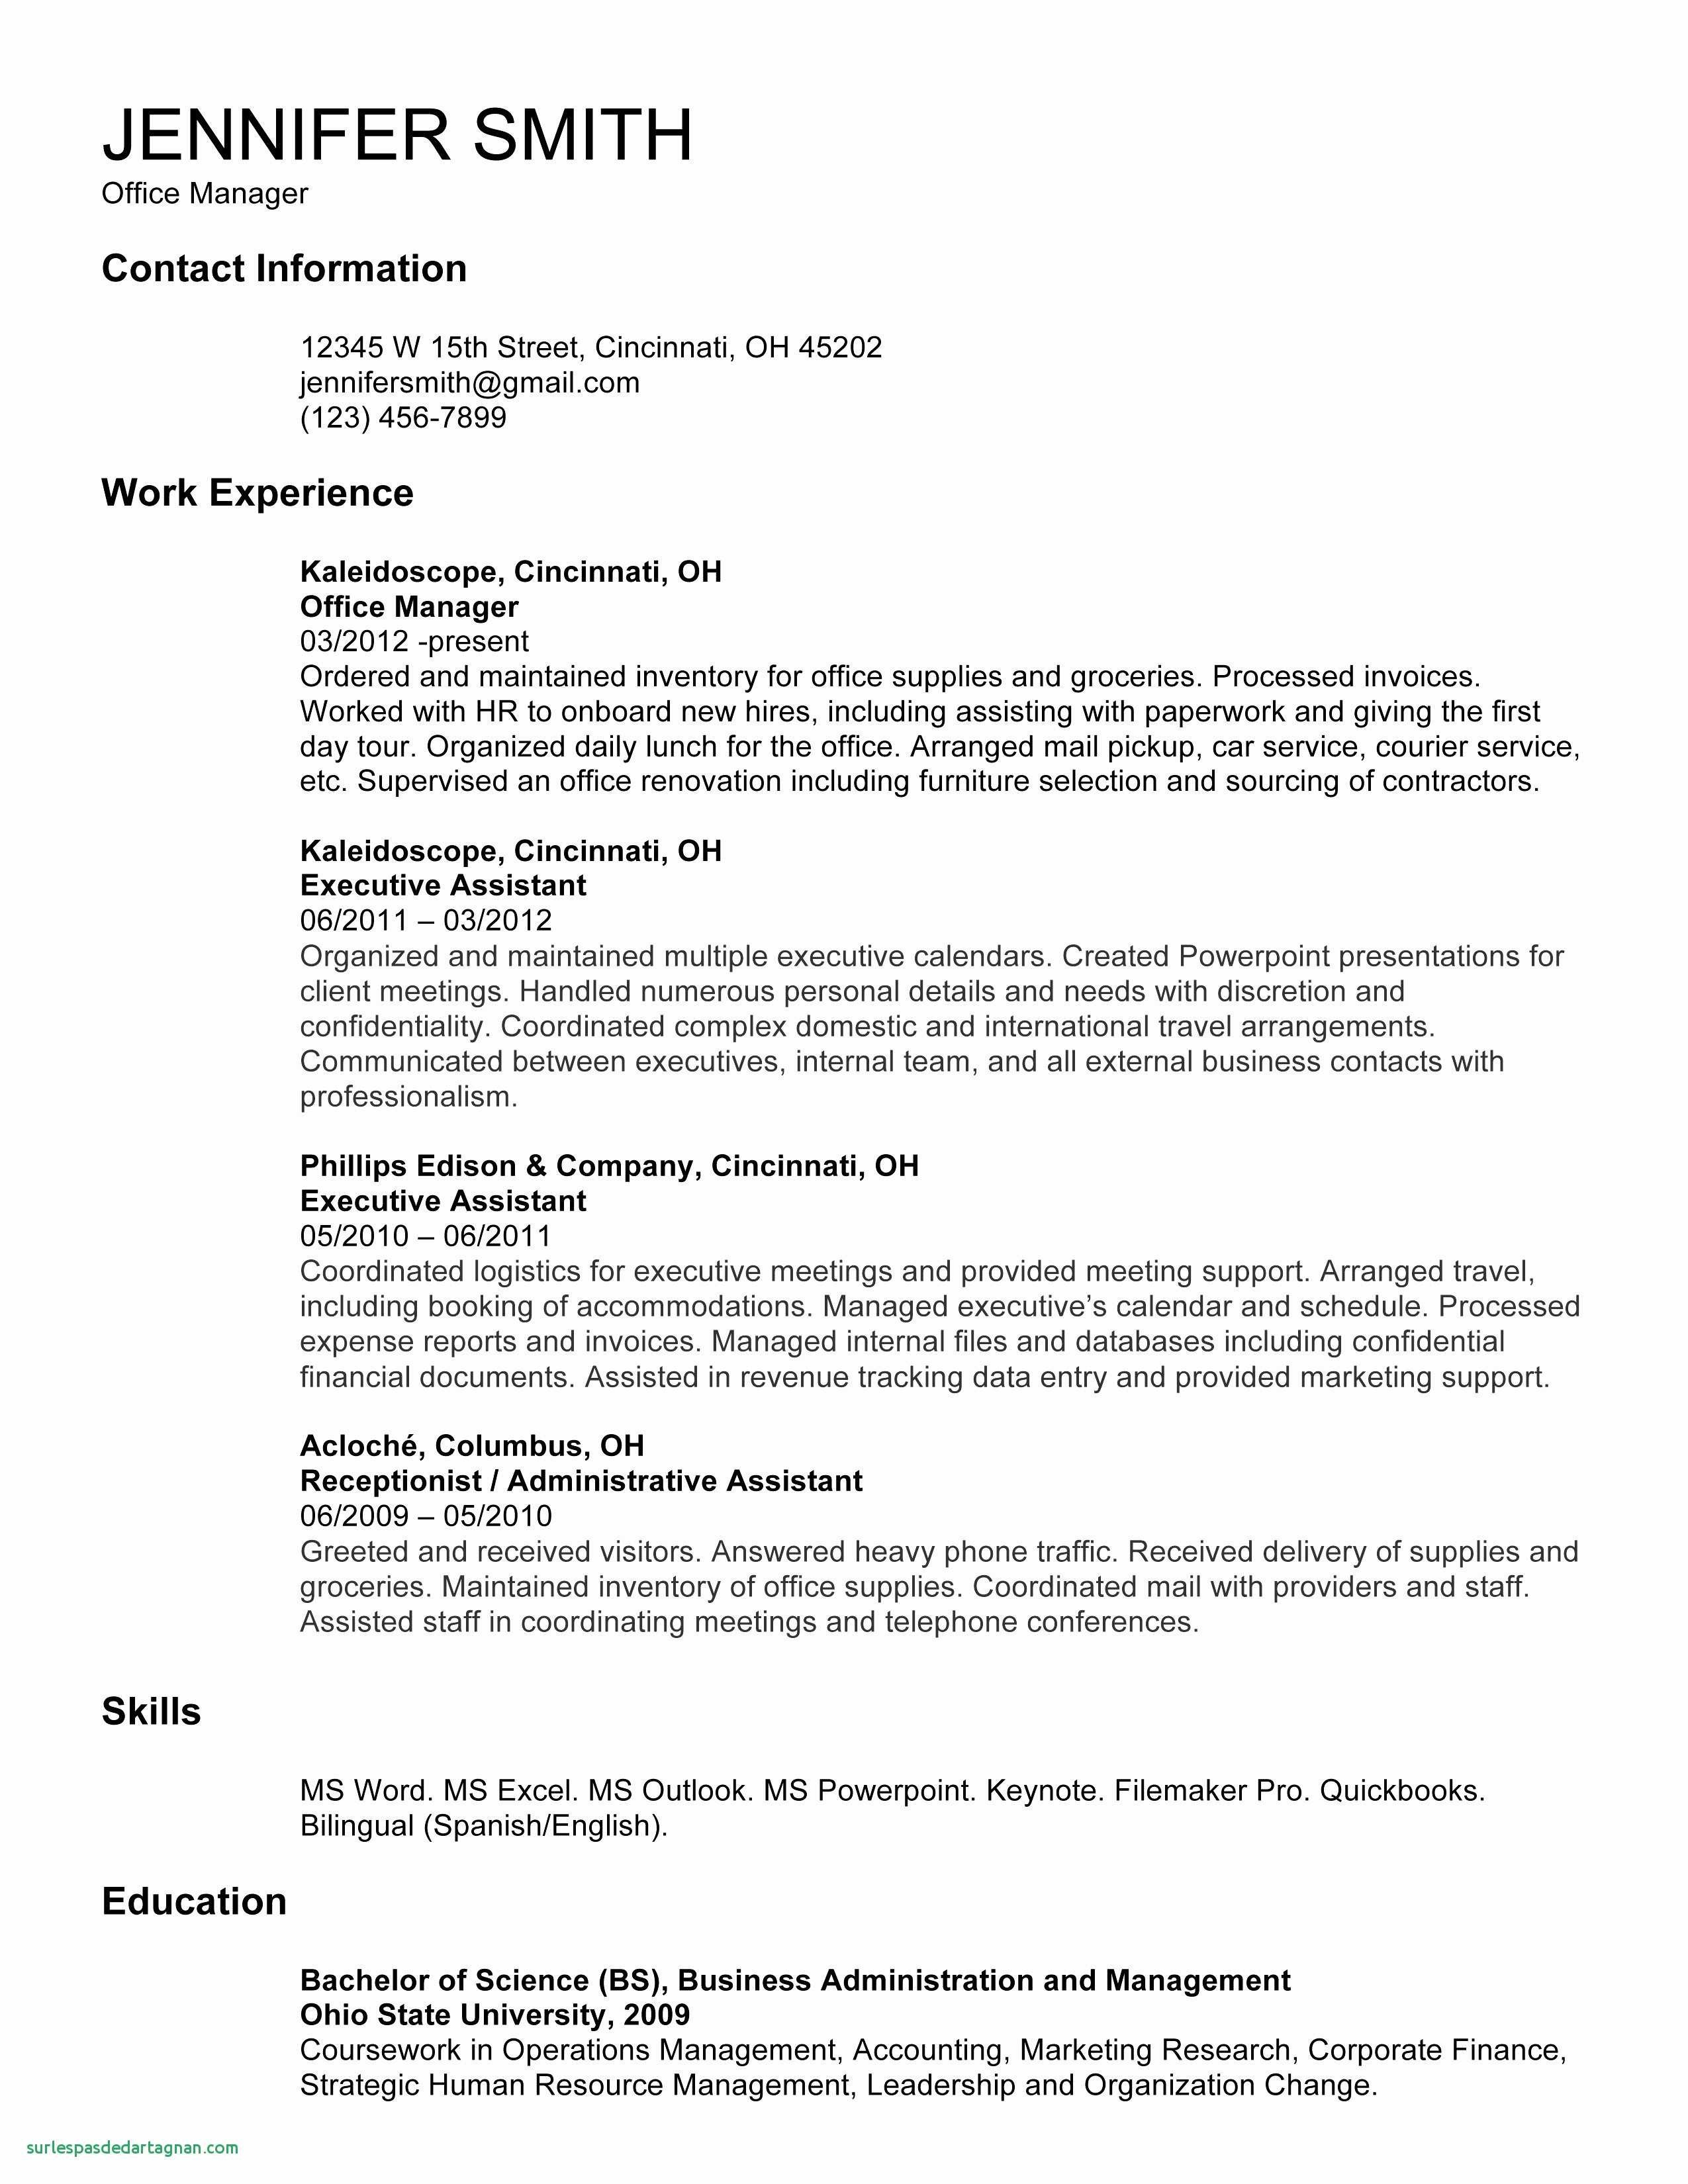 Acting Resume Template Microsoft Word - Acting Resume Sample Unique Inspirational Actor Resume Unique Actor